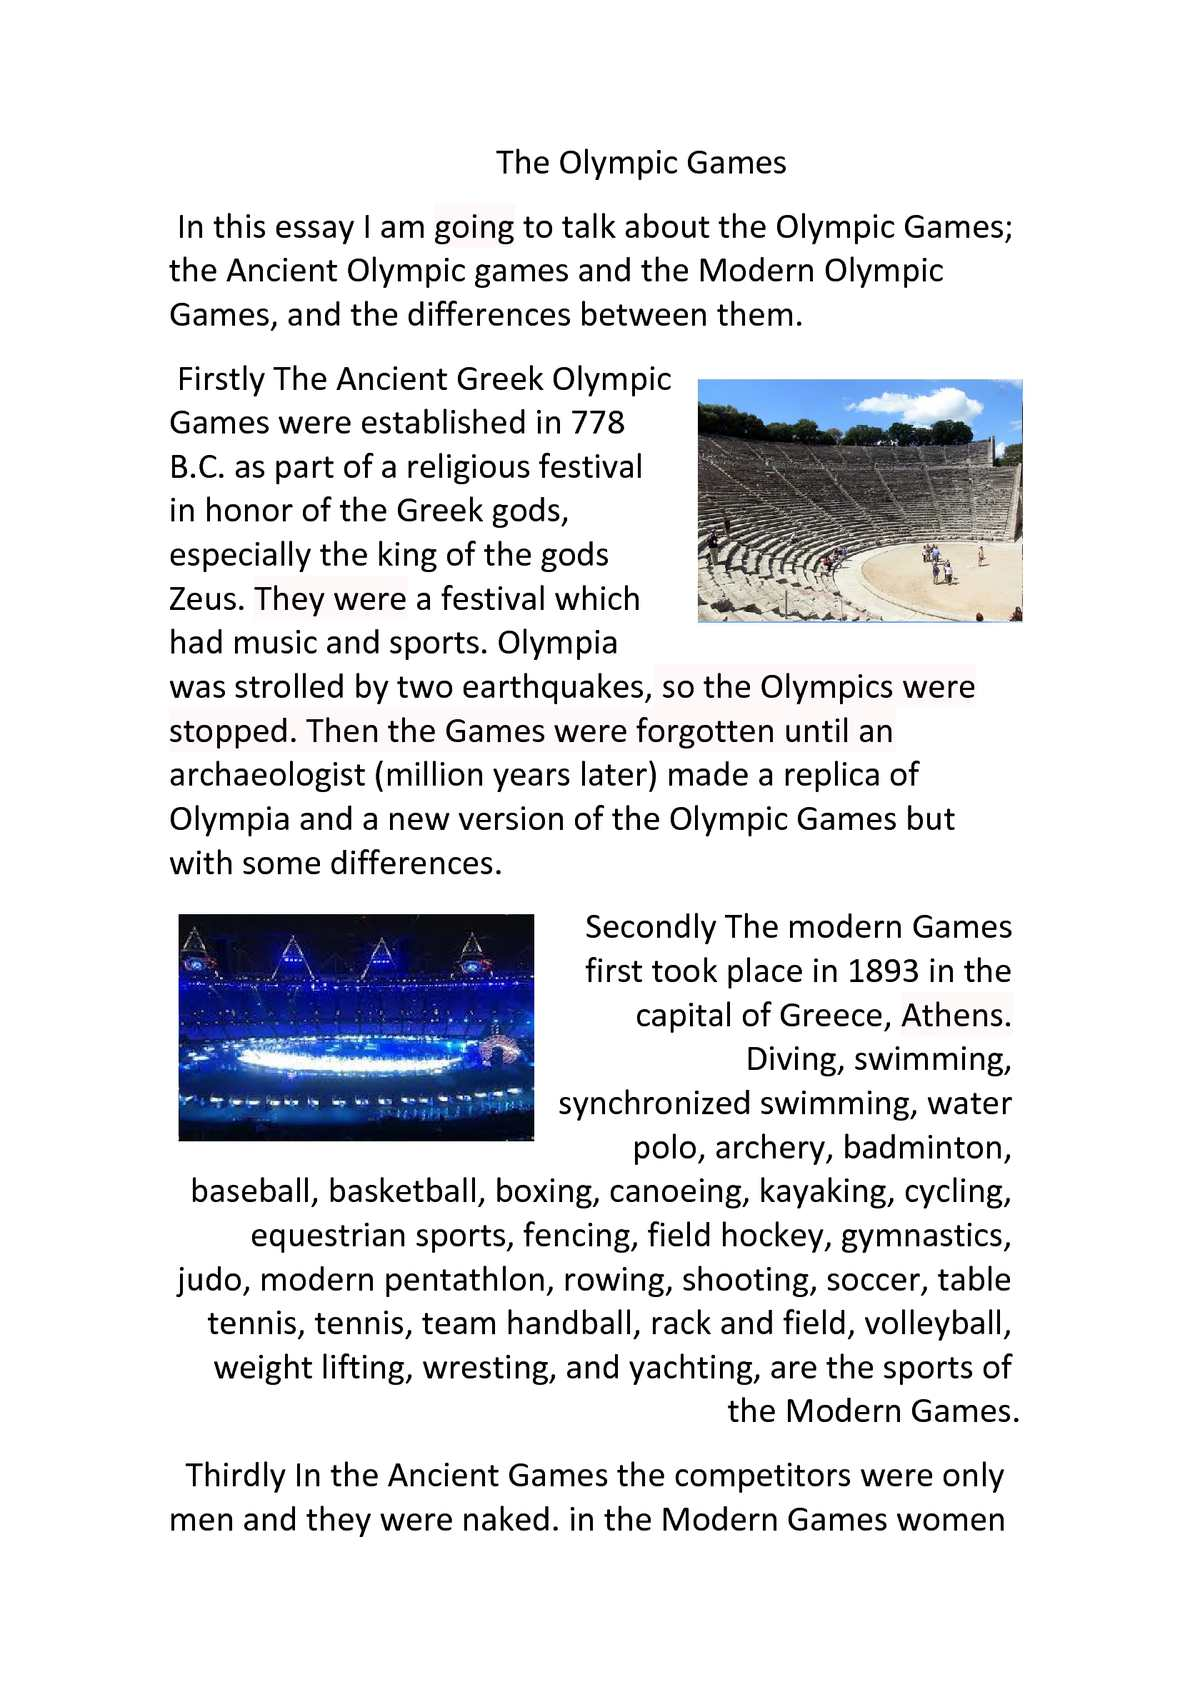 difference between ancient olymoics and modern olympics essay